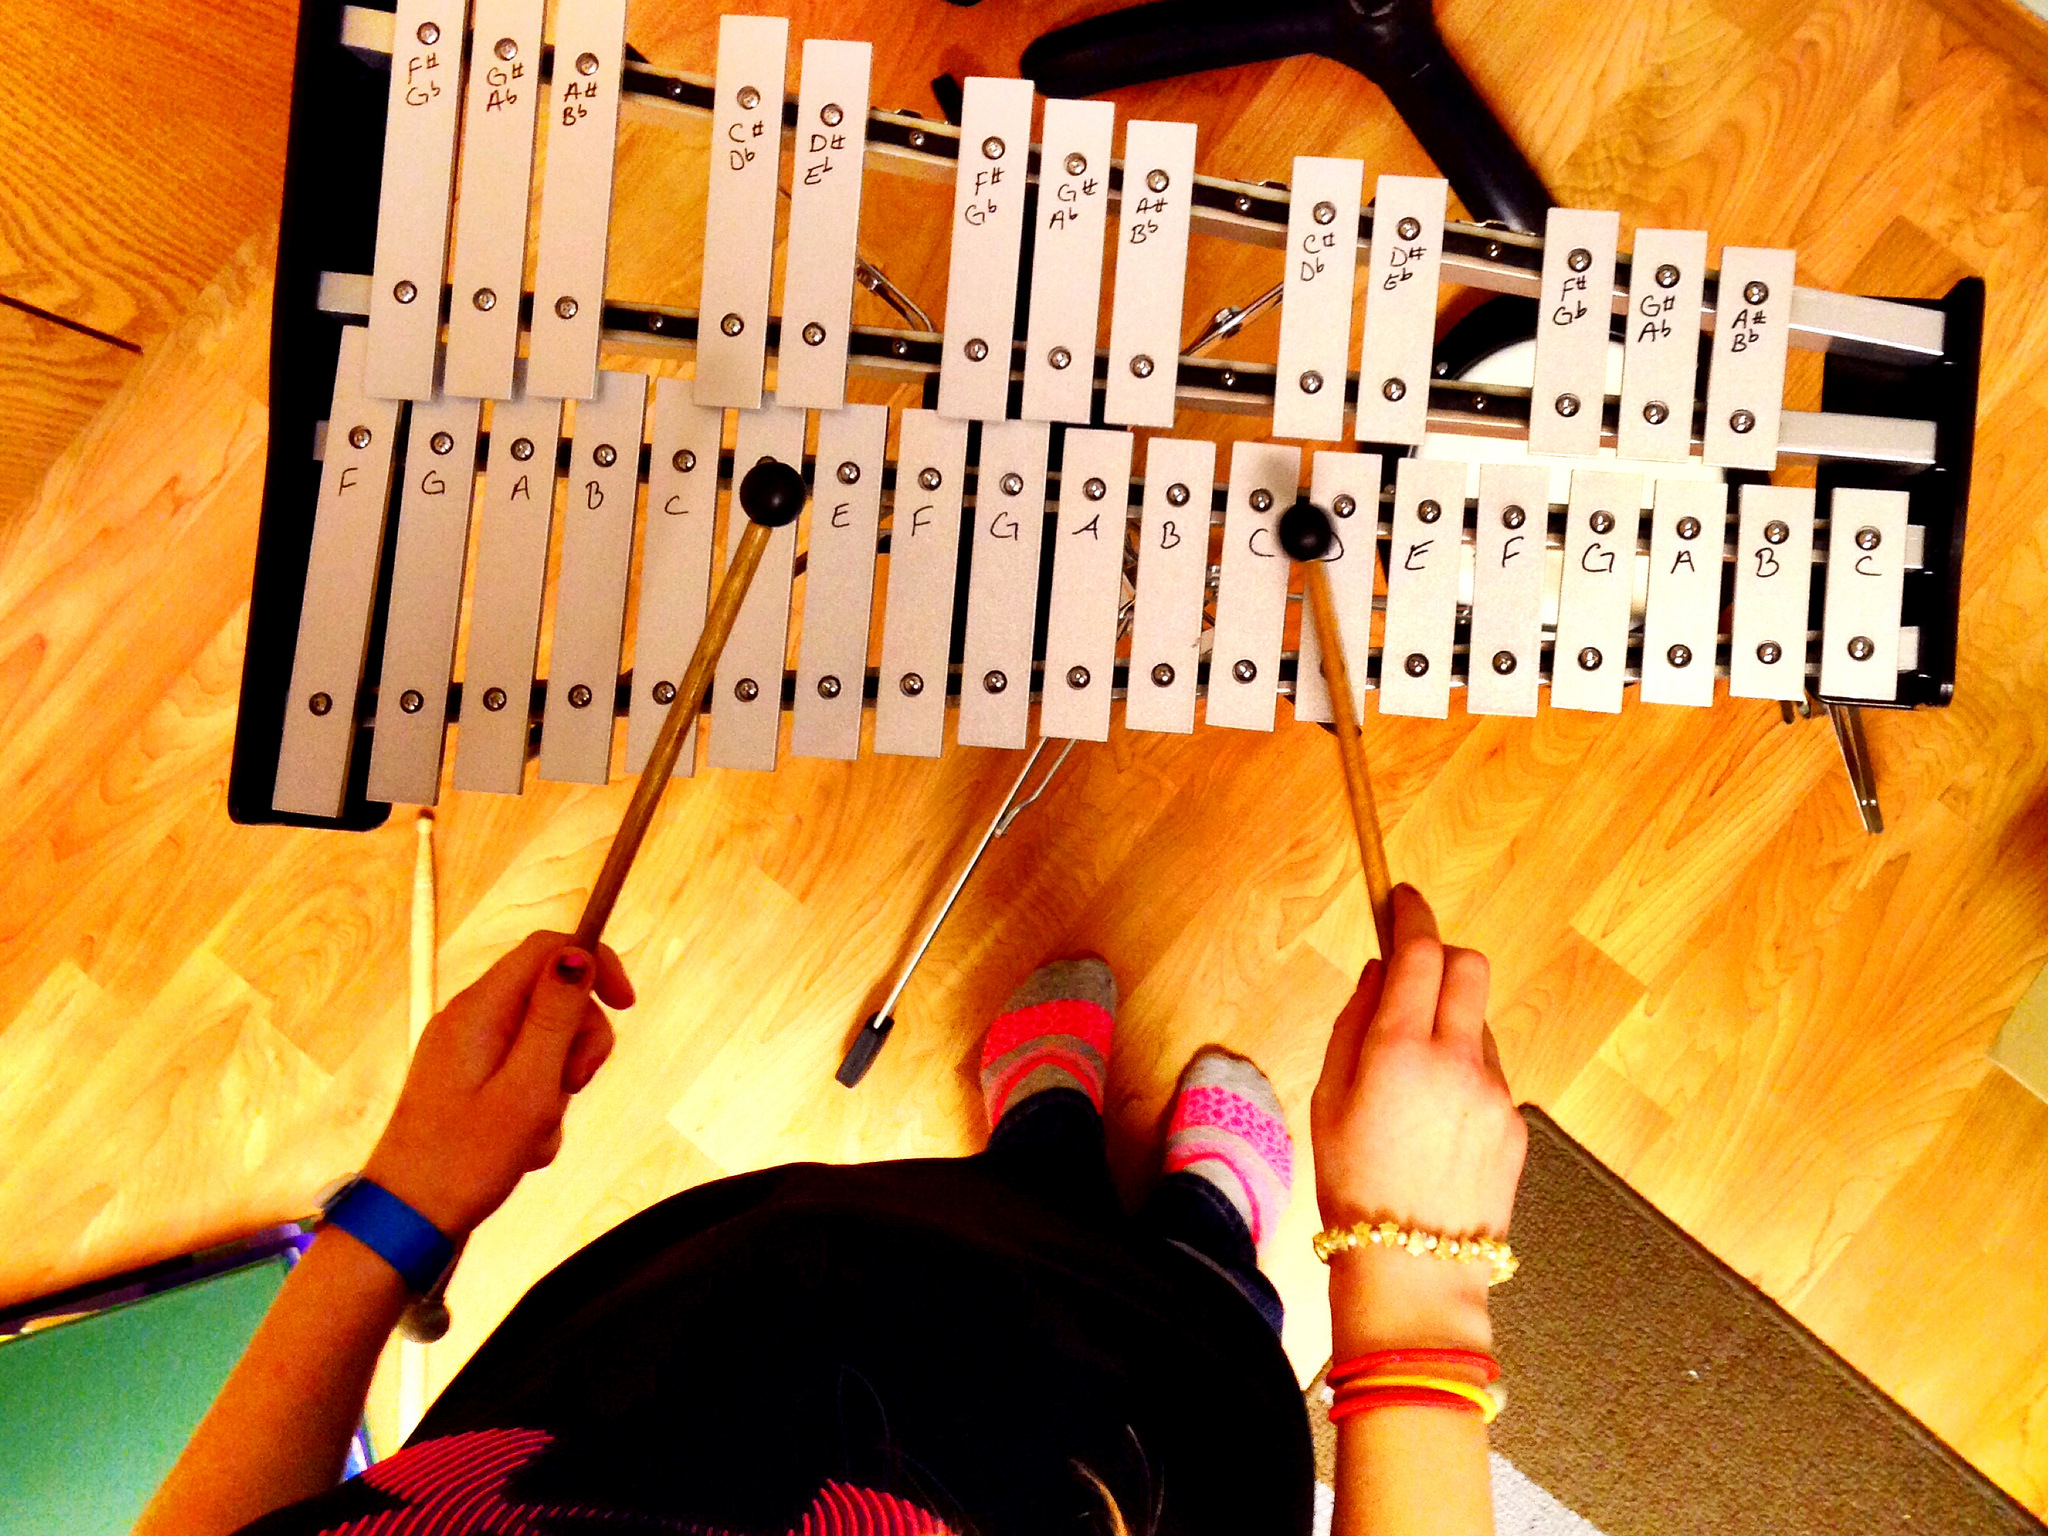 Best Glockenspiels for Beginner Home Practice